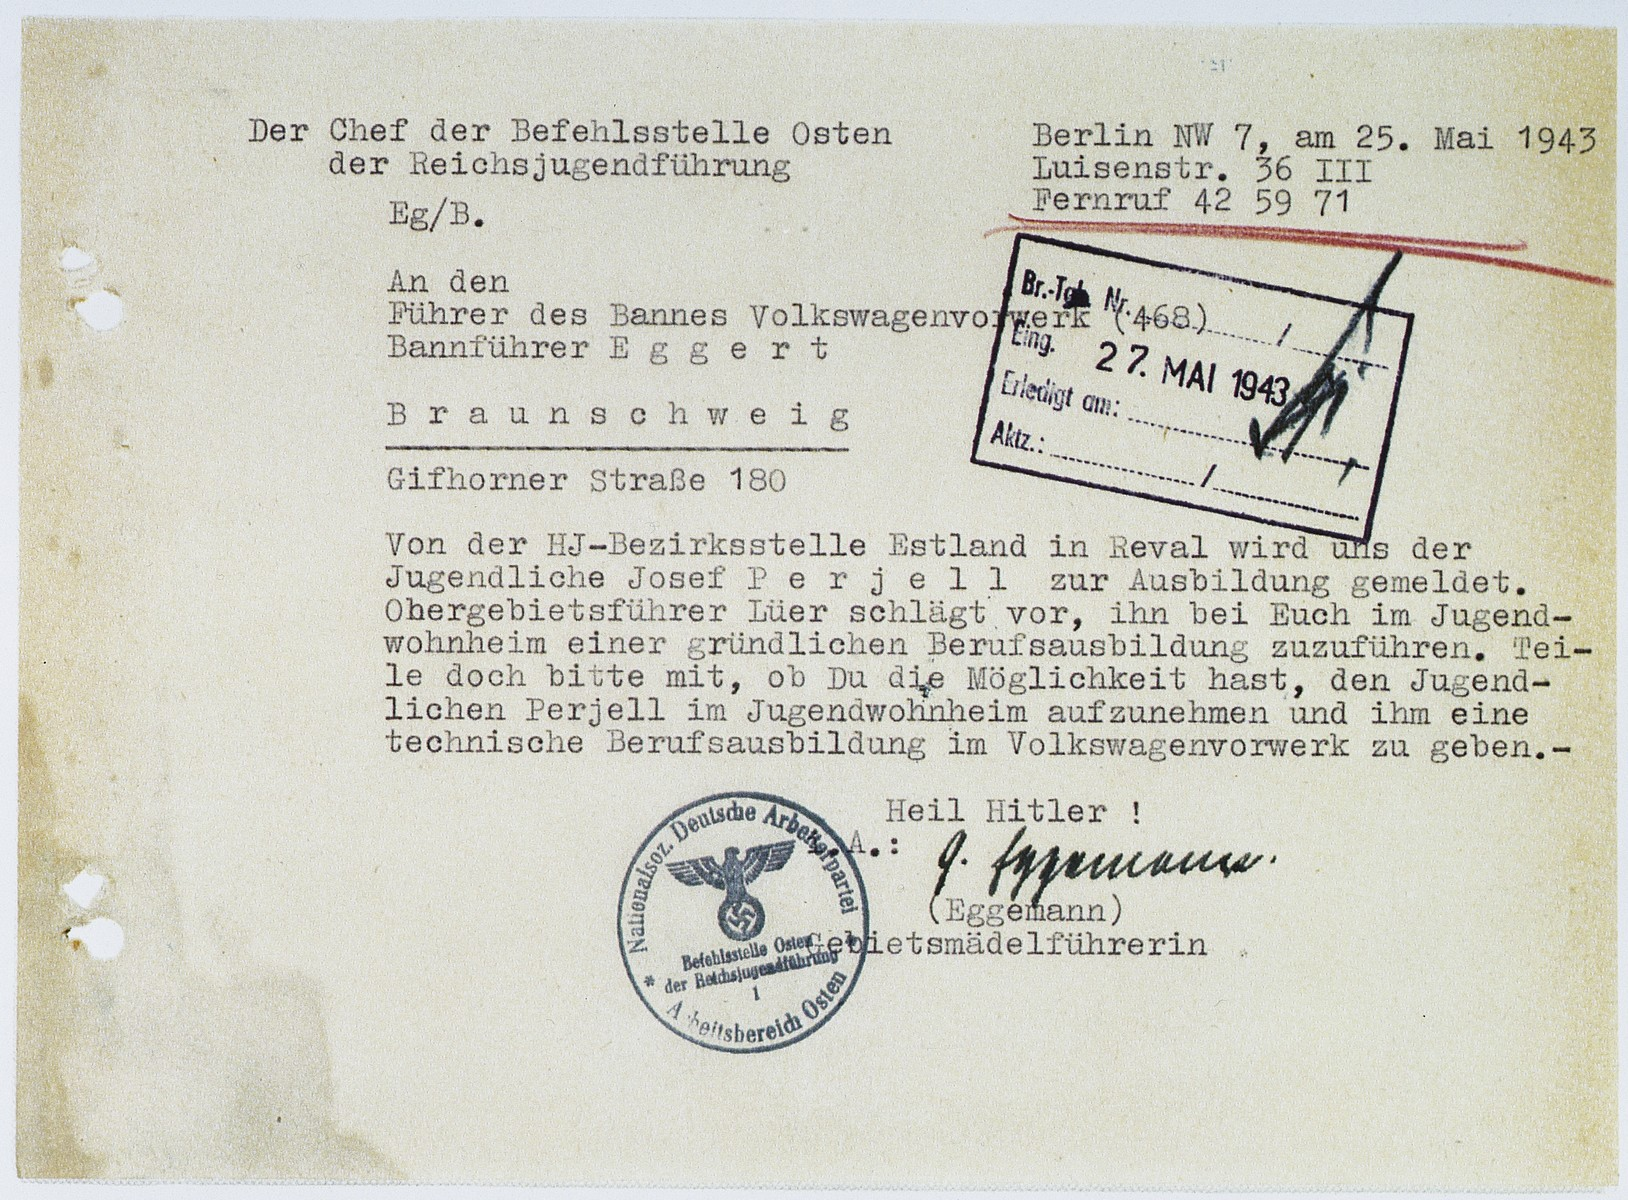 A communiciation dated May 25, 1943 from Eggemann, chief of the Reich Youth office, eastern command in Berlin to Eggert, head of the Volkswagen factory in Braunschweig, requesting that the youth, Josef Perjell (Solly Perel), who has registered at the Hitler Youth District Office Estland in Reval for training, be assigned a residence and technical apprenticeship at the Volkswagen factory.